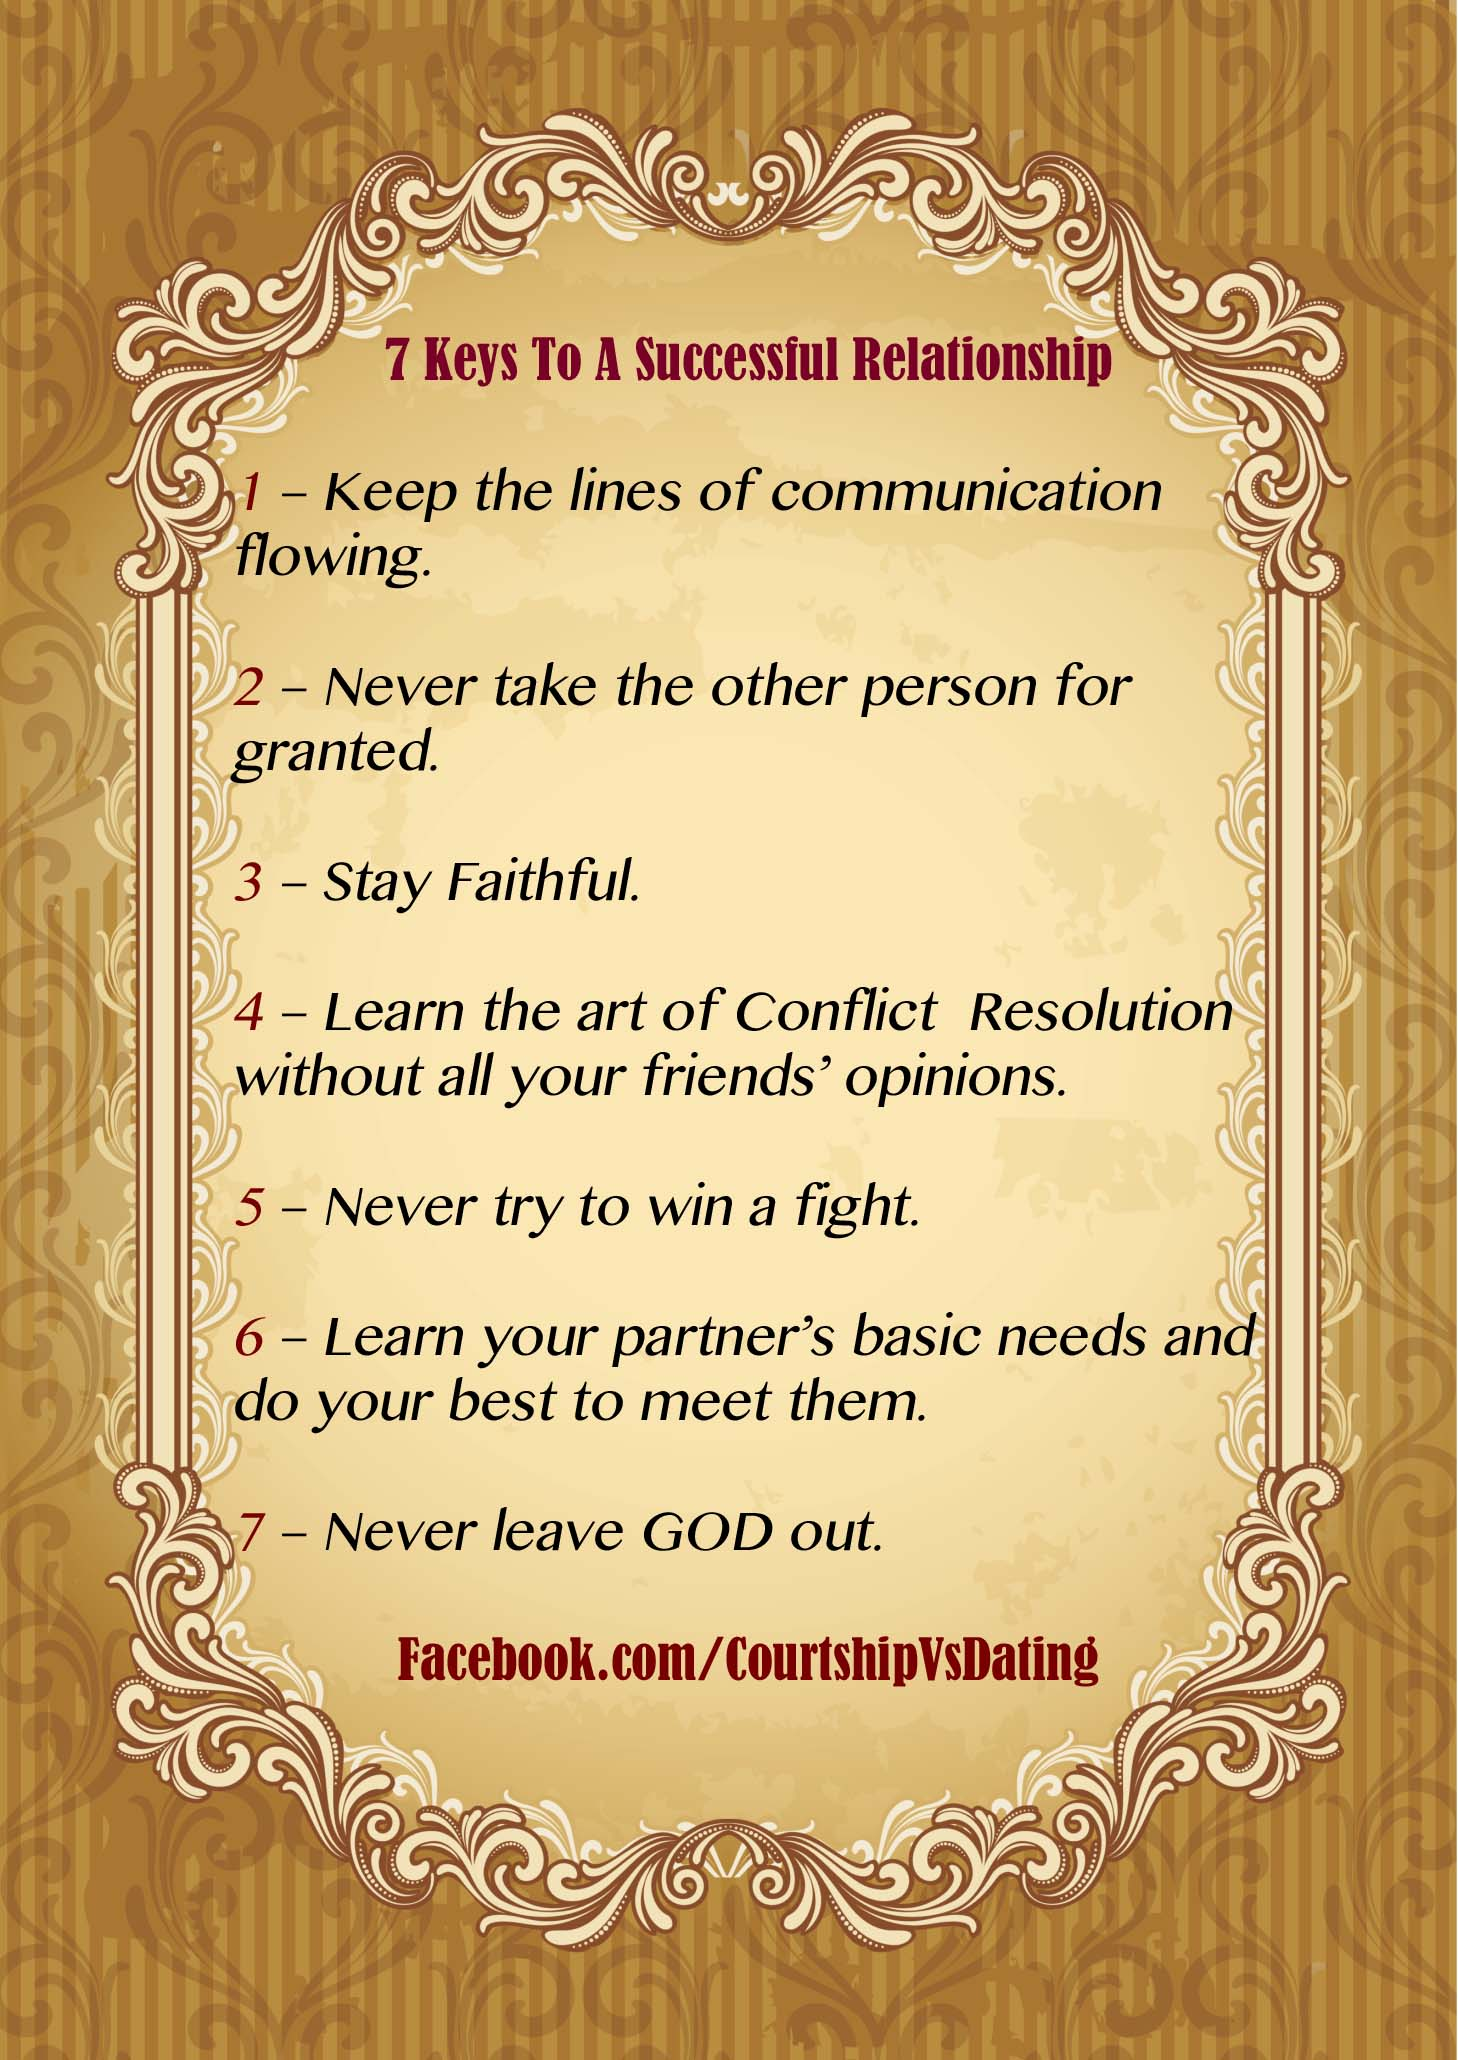 Find My Keys >> 7 Keys To A Successful Relationship | Find Your Purpose in Life